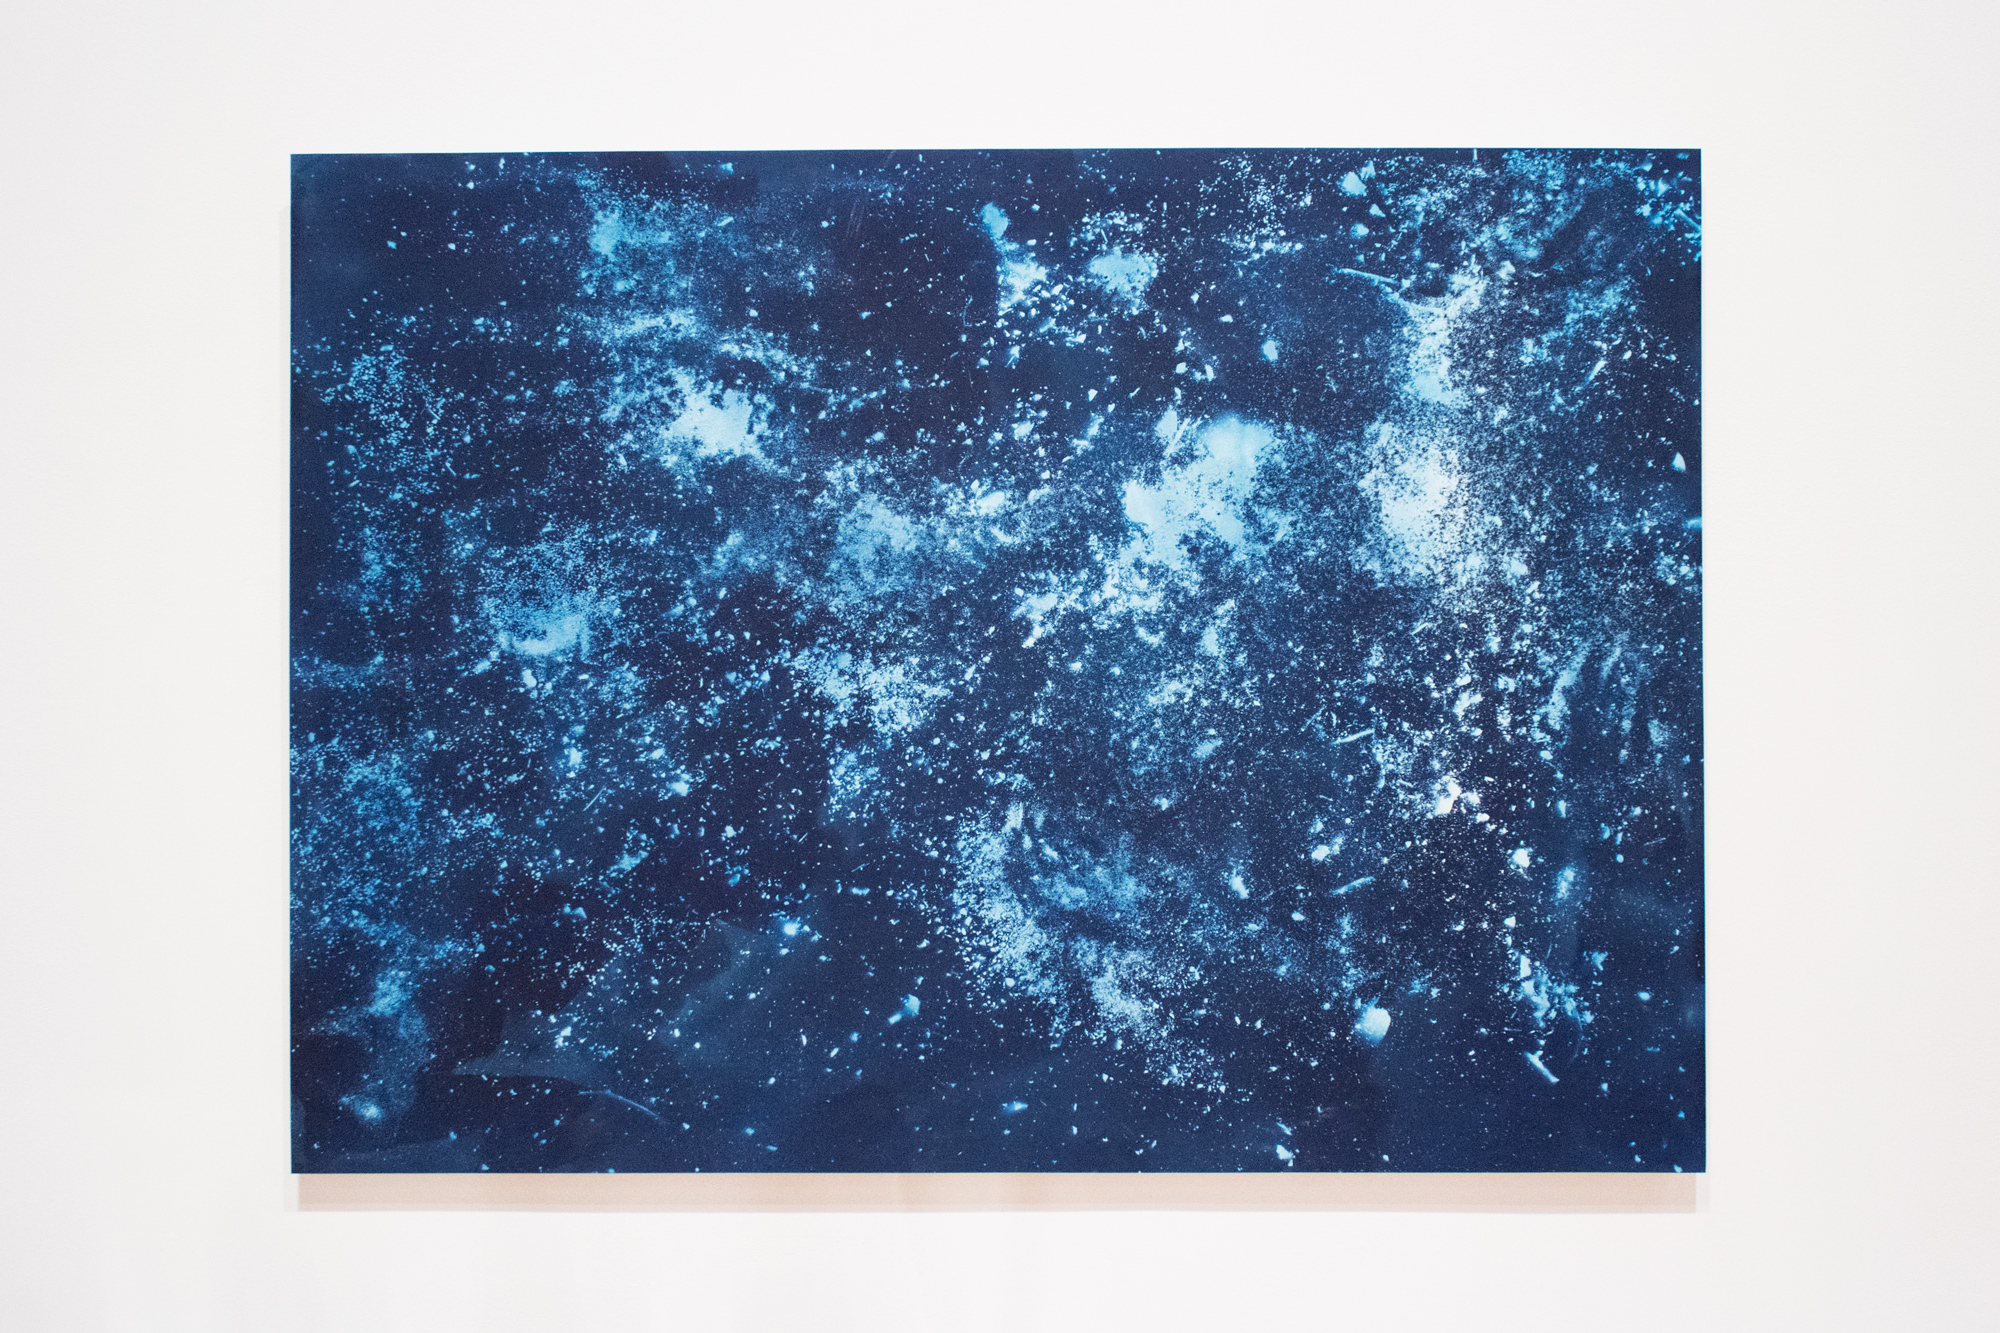 Planetarium (Pile)      | 2018 | 44x60in | cyanotype on paper (exposed with rocks and residue extracted from clay sourced from a construction pile at Mills College), mounted on wooden panel |  $2500  *does not include shipping outside of Bay Area